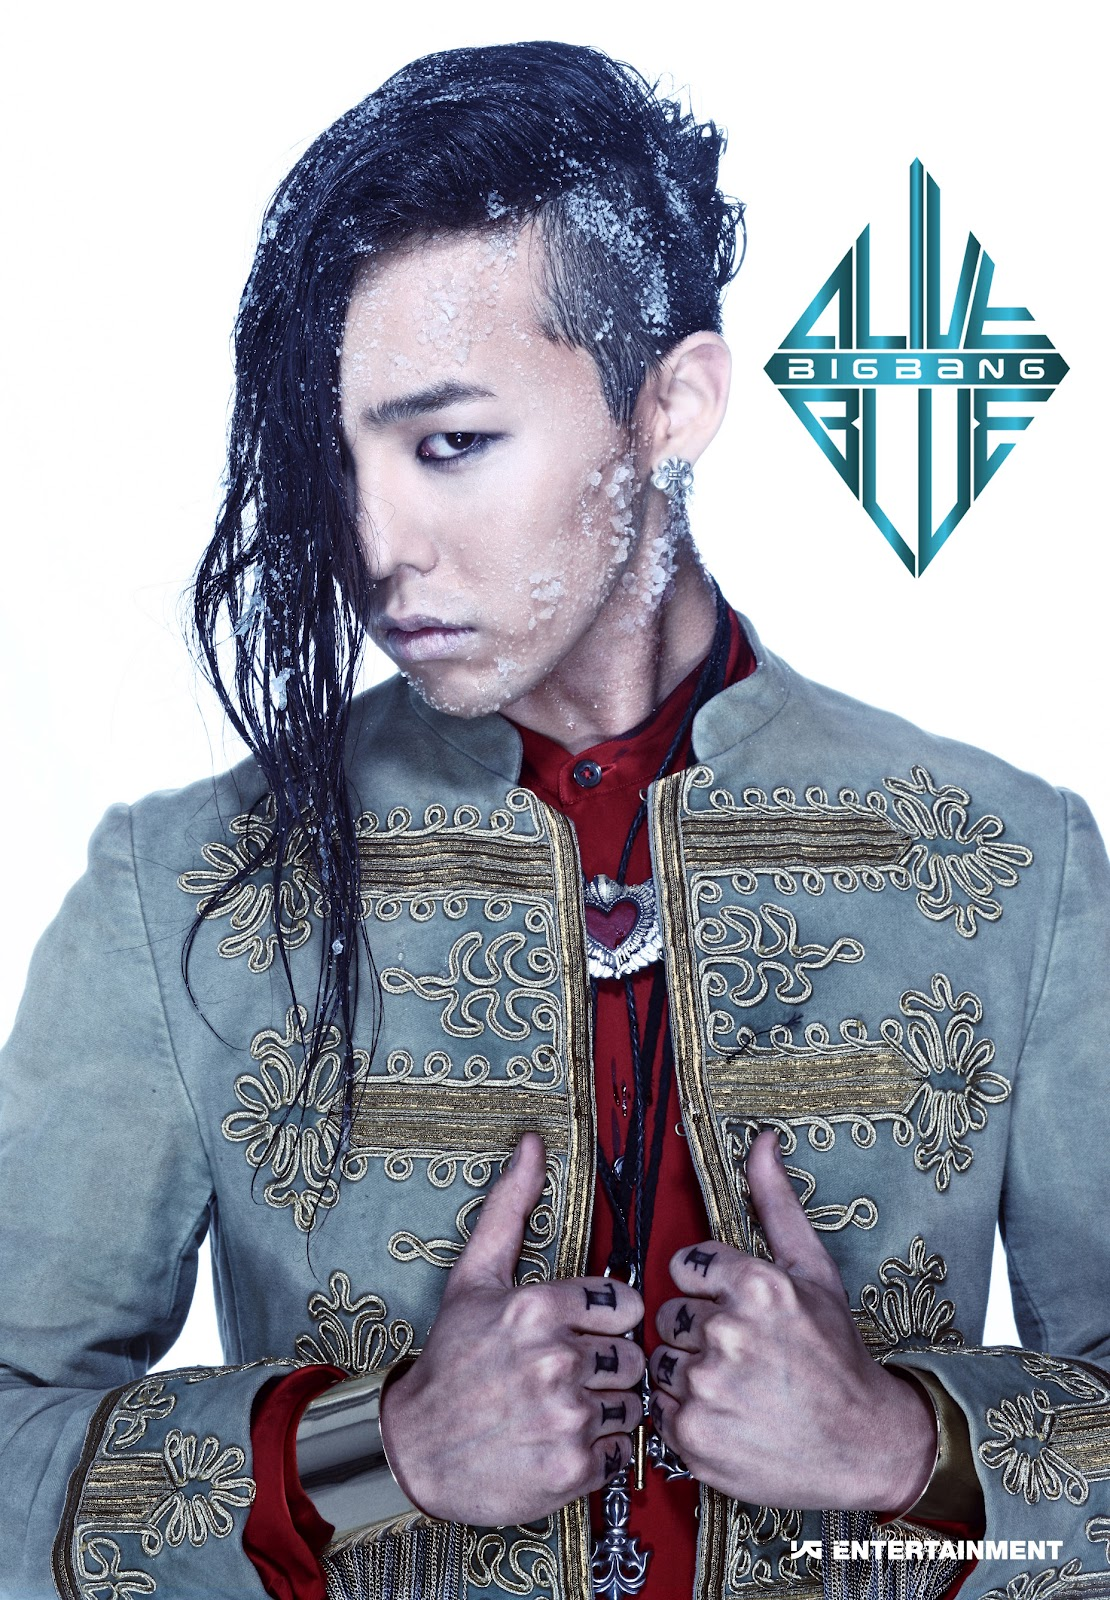 http://bigbangpl.files.wordpress.com/2012/02/bigbang-is-back-gd.jpg